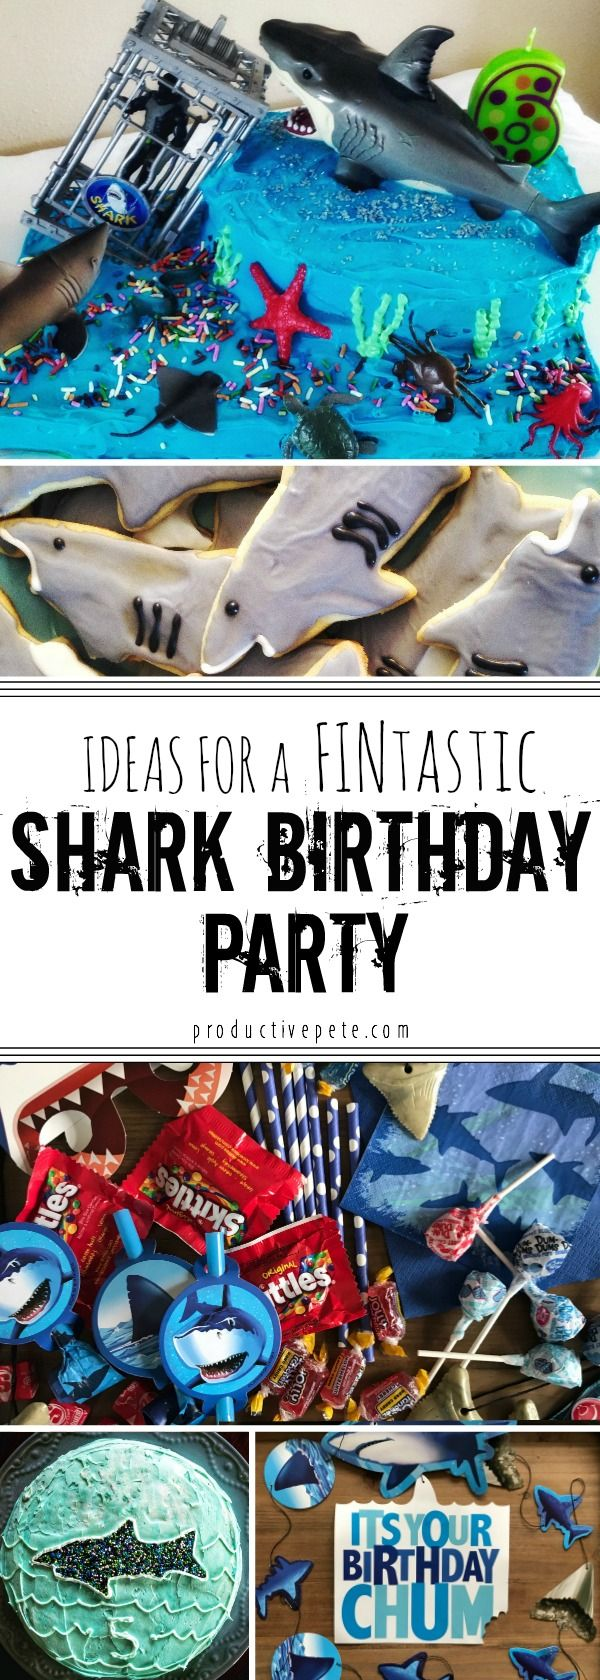 Looking for Shark Birthday Party ideas? Did your kiddo see Shark Week and is now obsessed with having a shark theme for their special day? Look at this Fintastic Shark Birthday with two shark birthday cake options, easy shark cookies & shark birthday party decorations too! #sharks #sharkbirthday #sharkparty